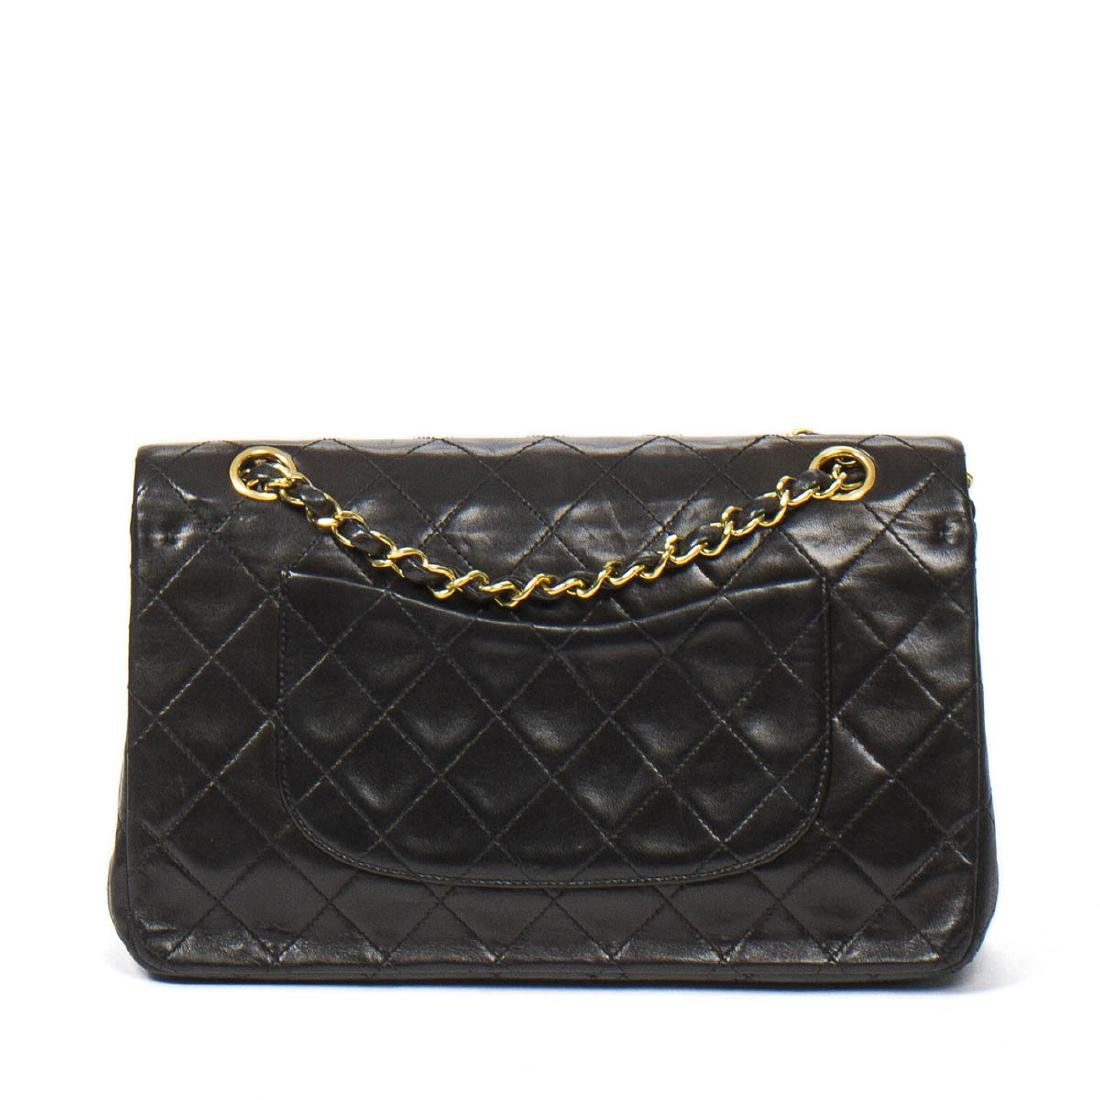 Chanel Classic Double Flap 26 in Black Quilted Leather - 5